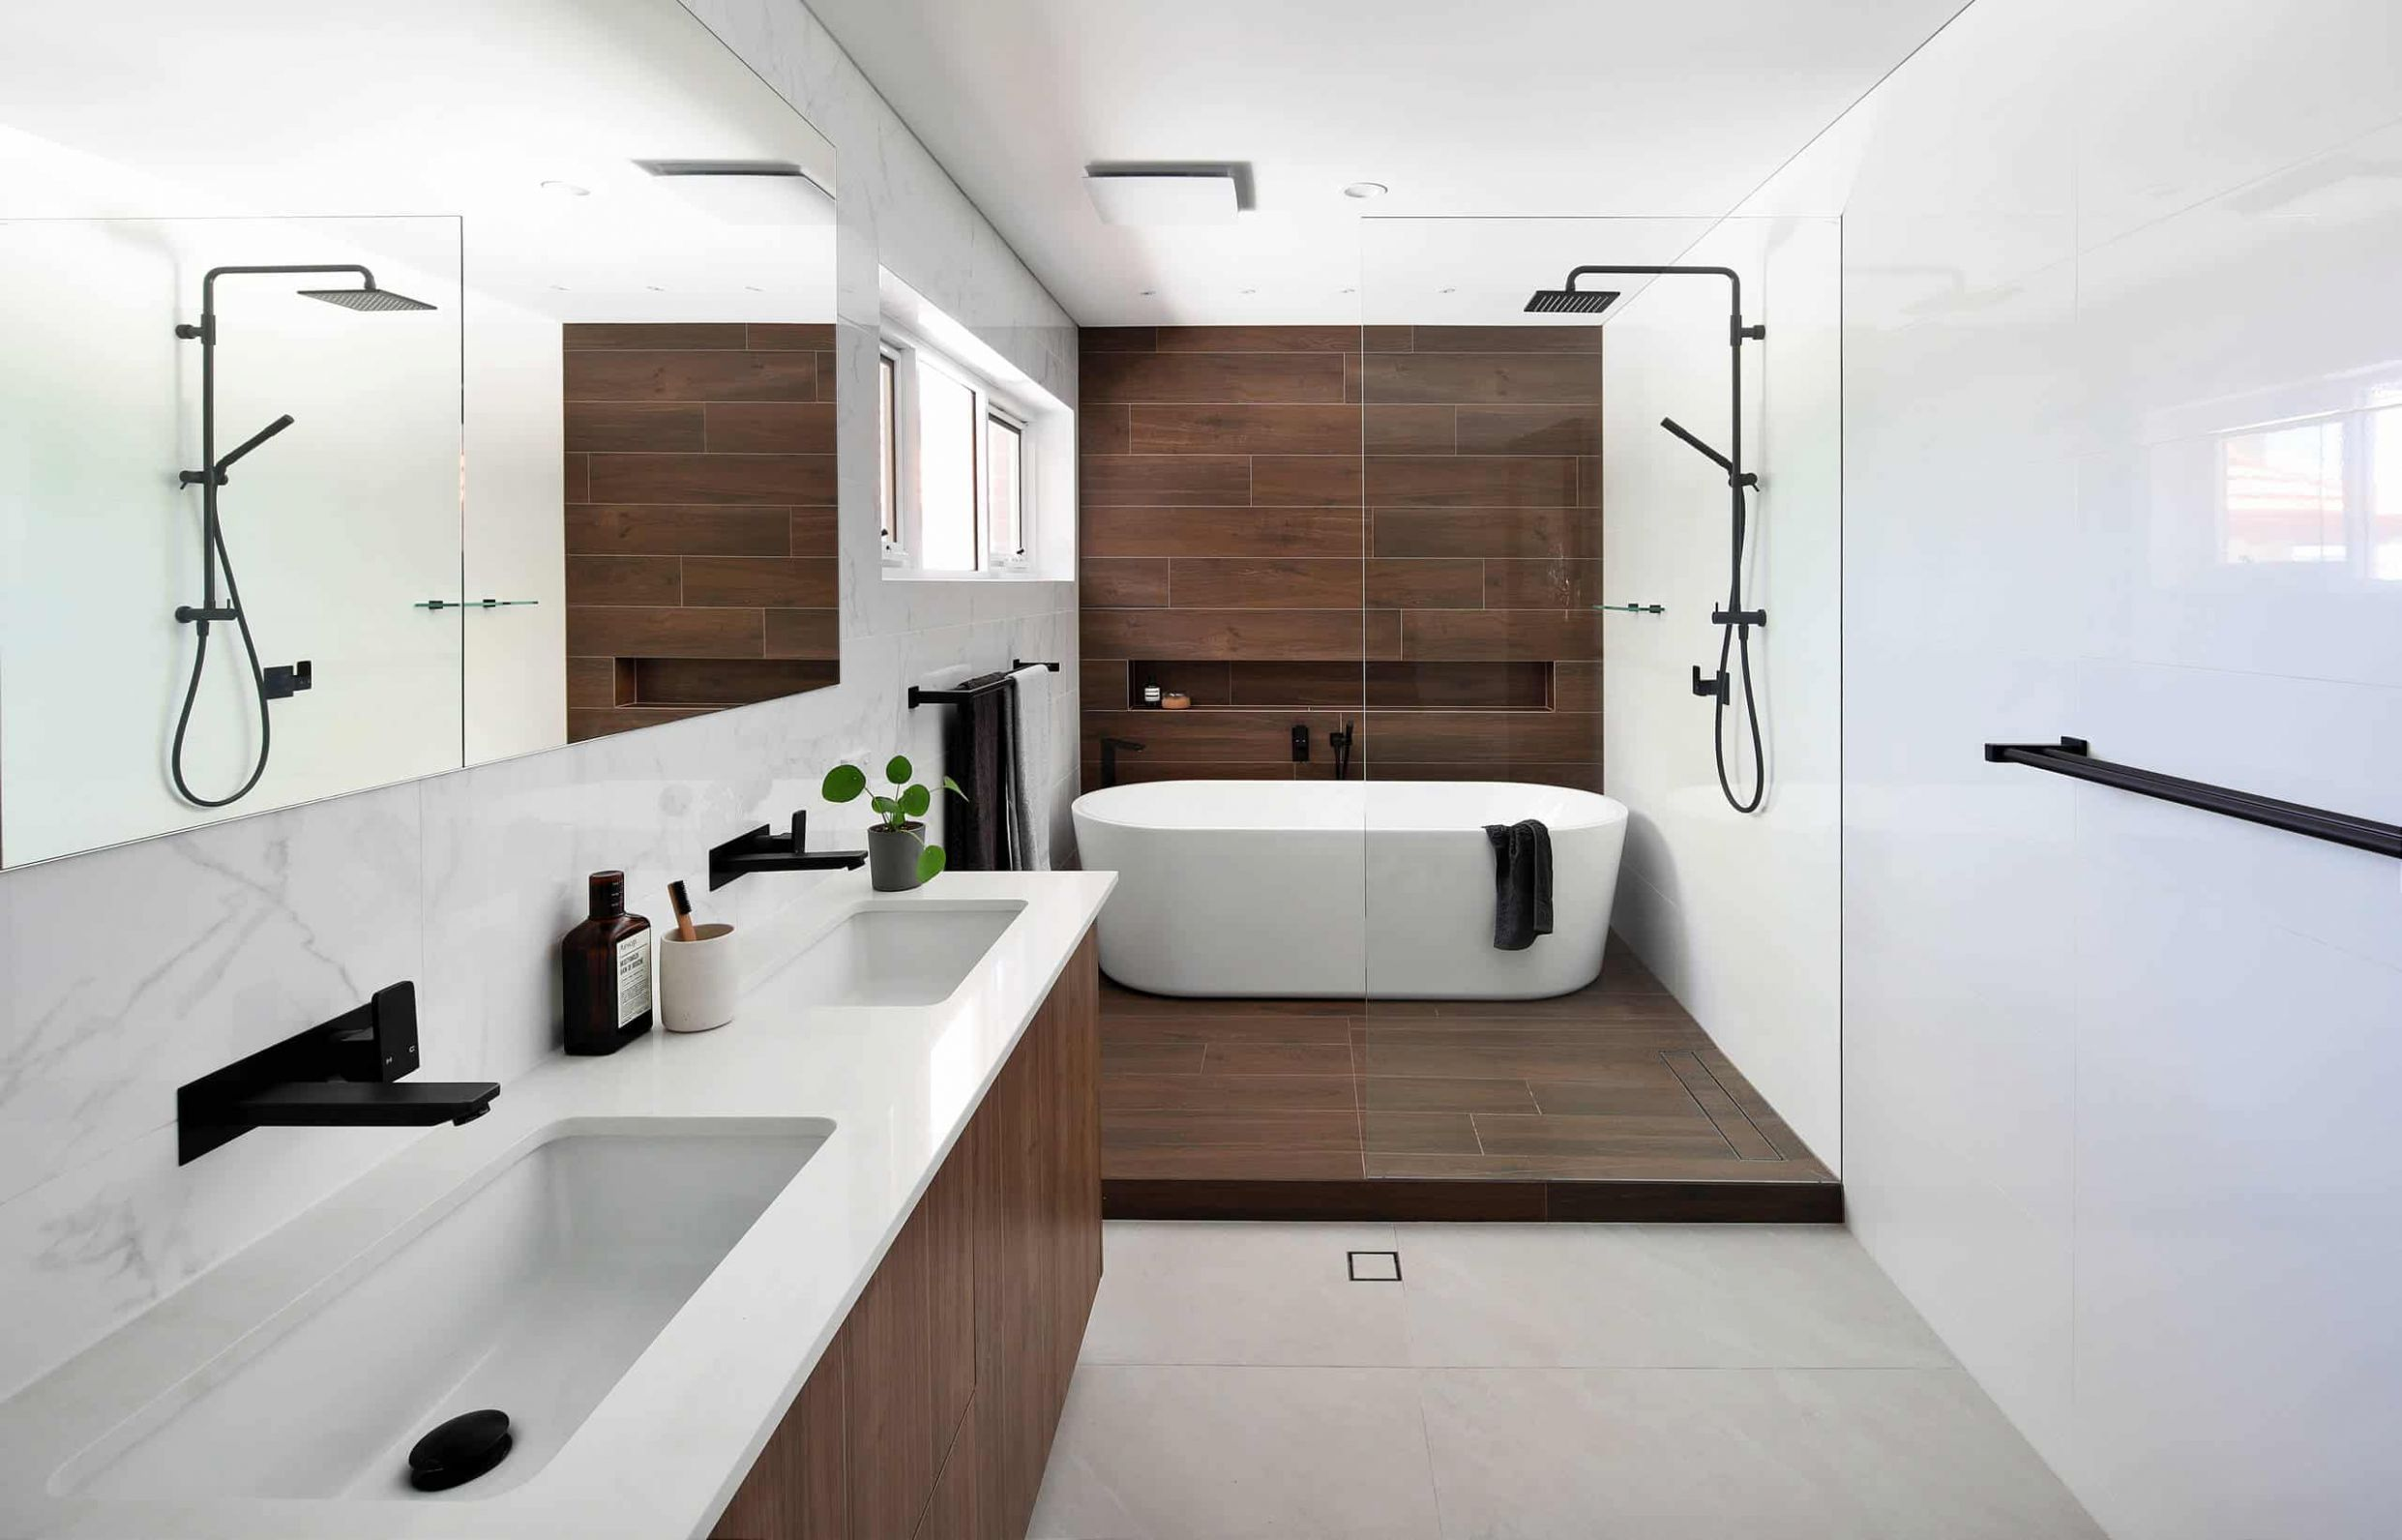 10 Trendy Bathroom Ideas for 10 | Decor Snob - bathroom ideas for 2020